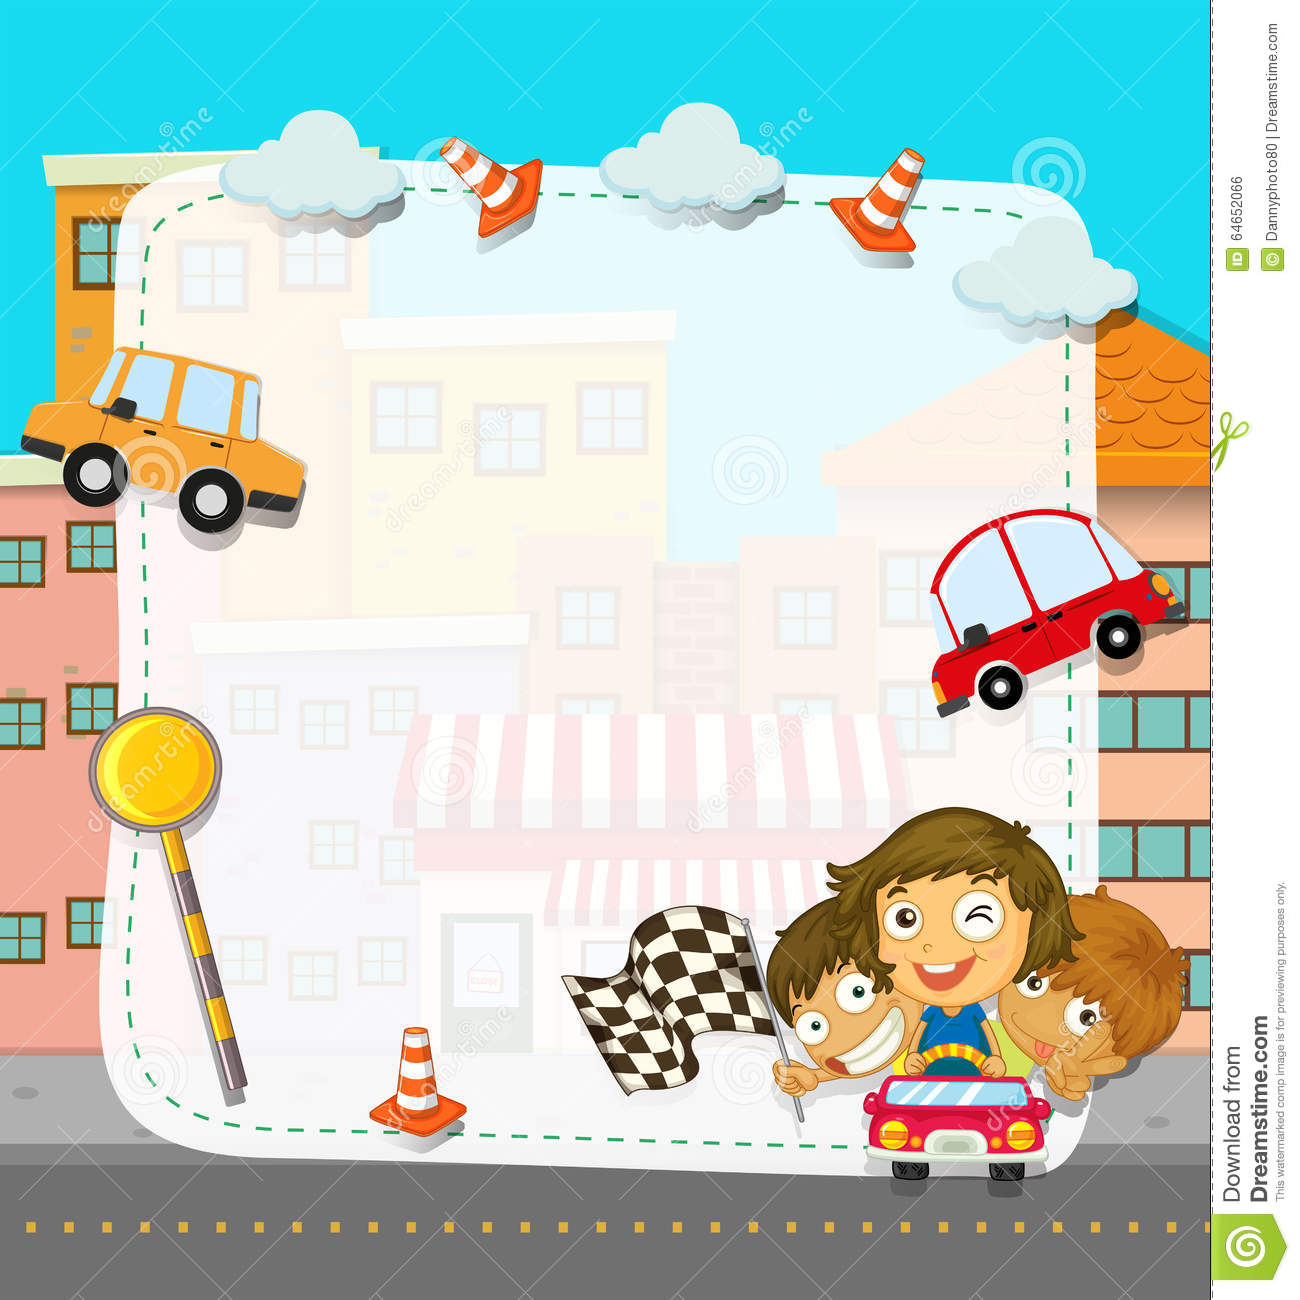 Border Design With Children And Traffic Stock Vector - Image: 64652066